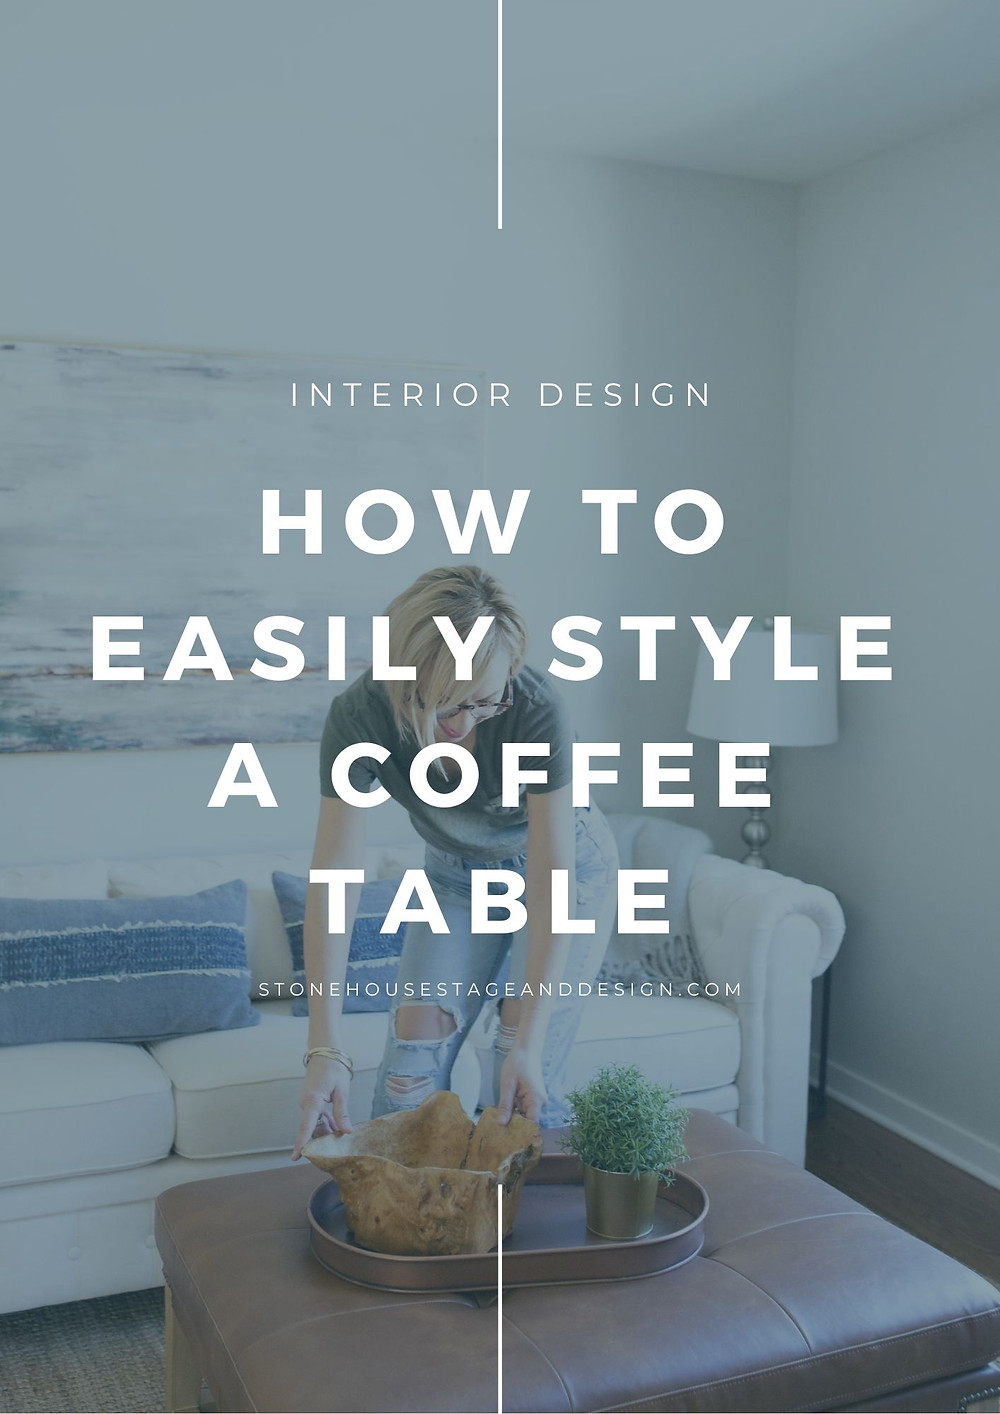 How to Easily Style a Coffee Table